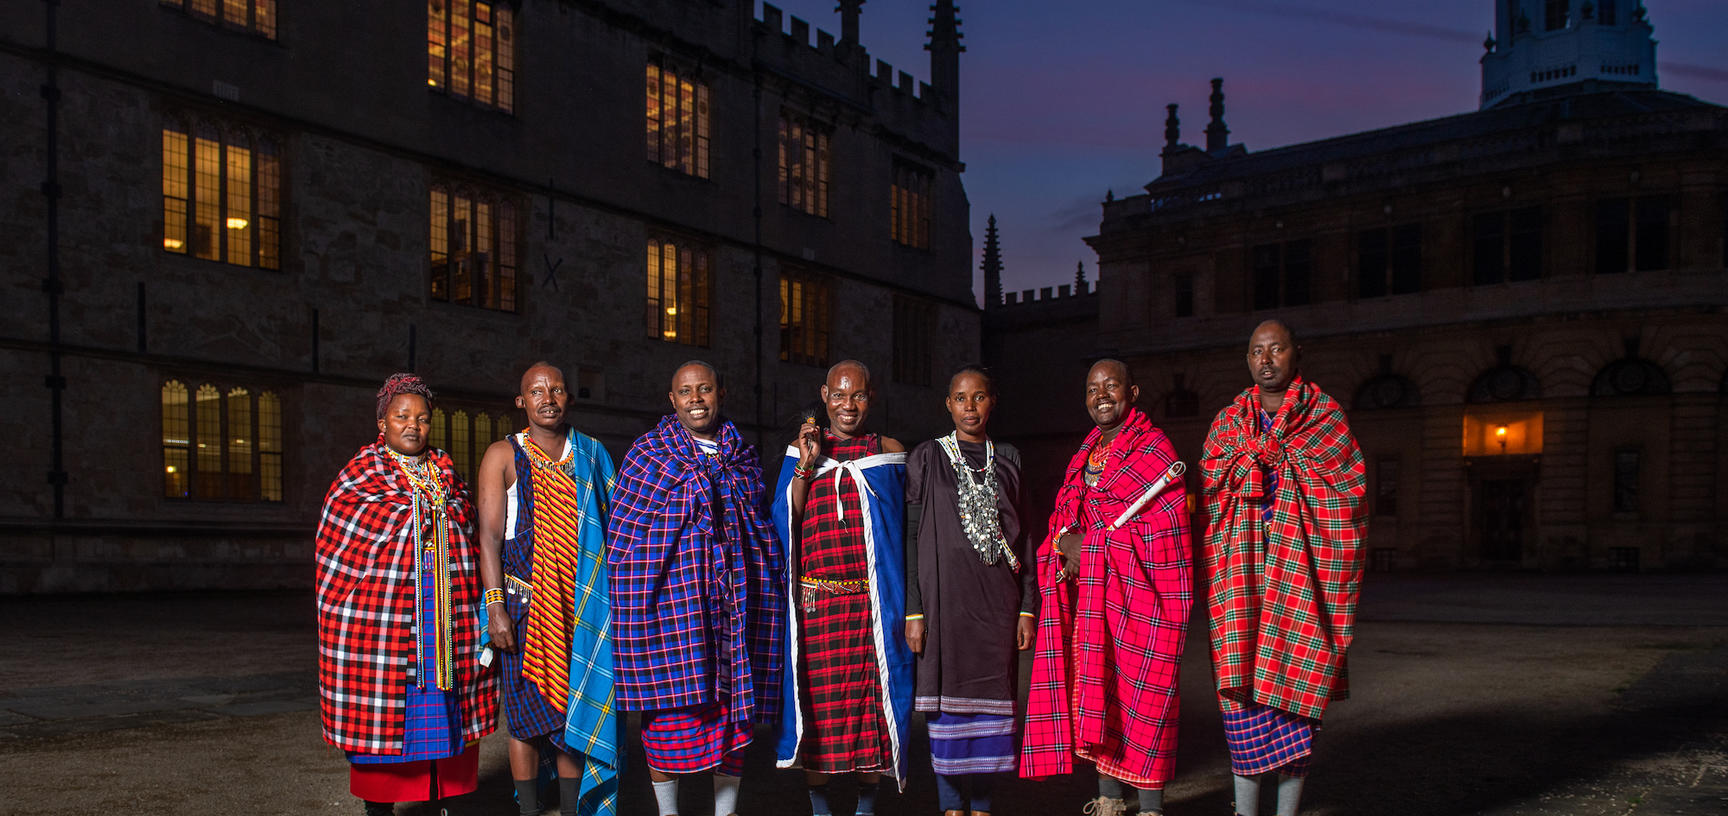 Maasai group at the Bodleian Library, Oxford